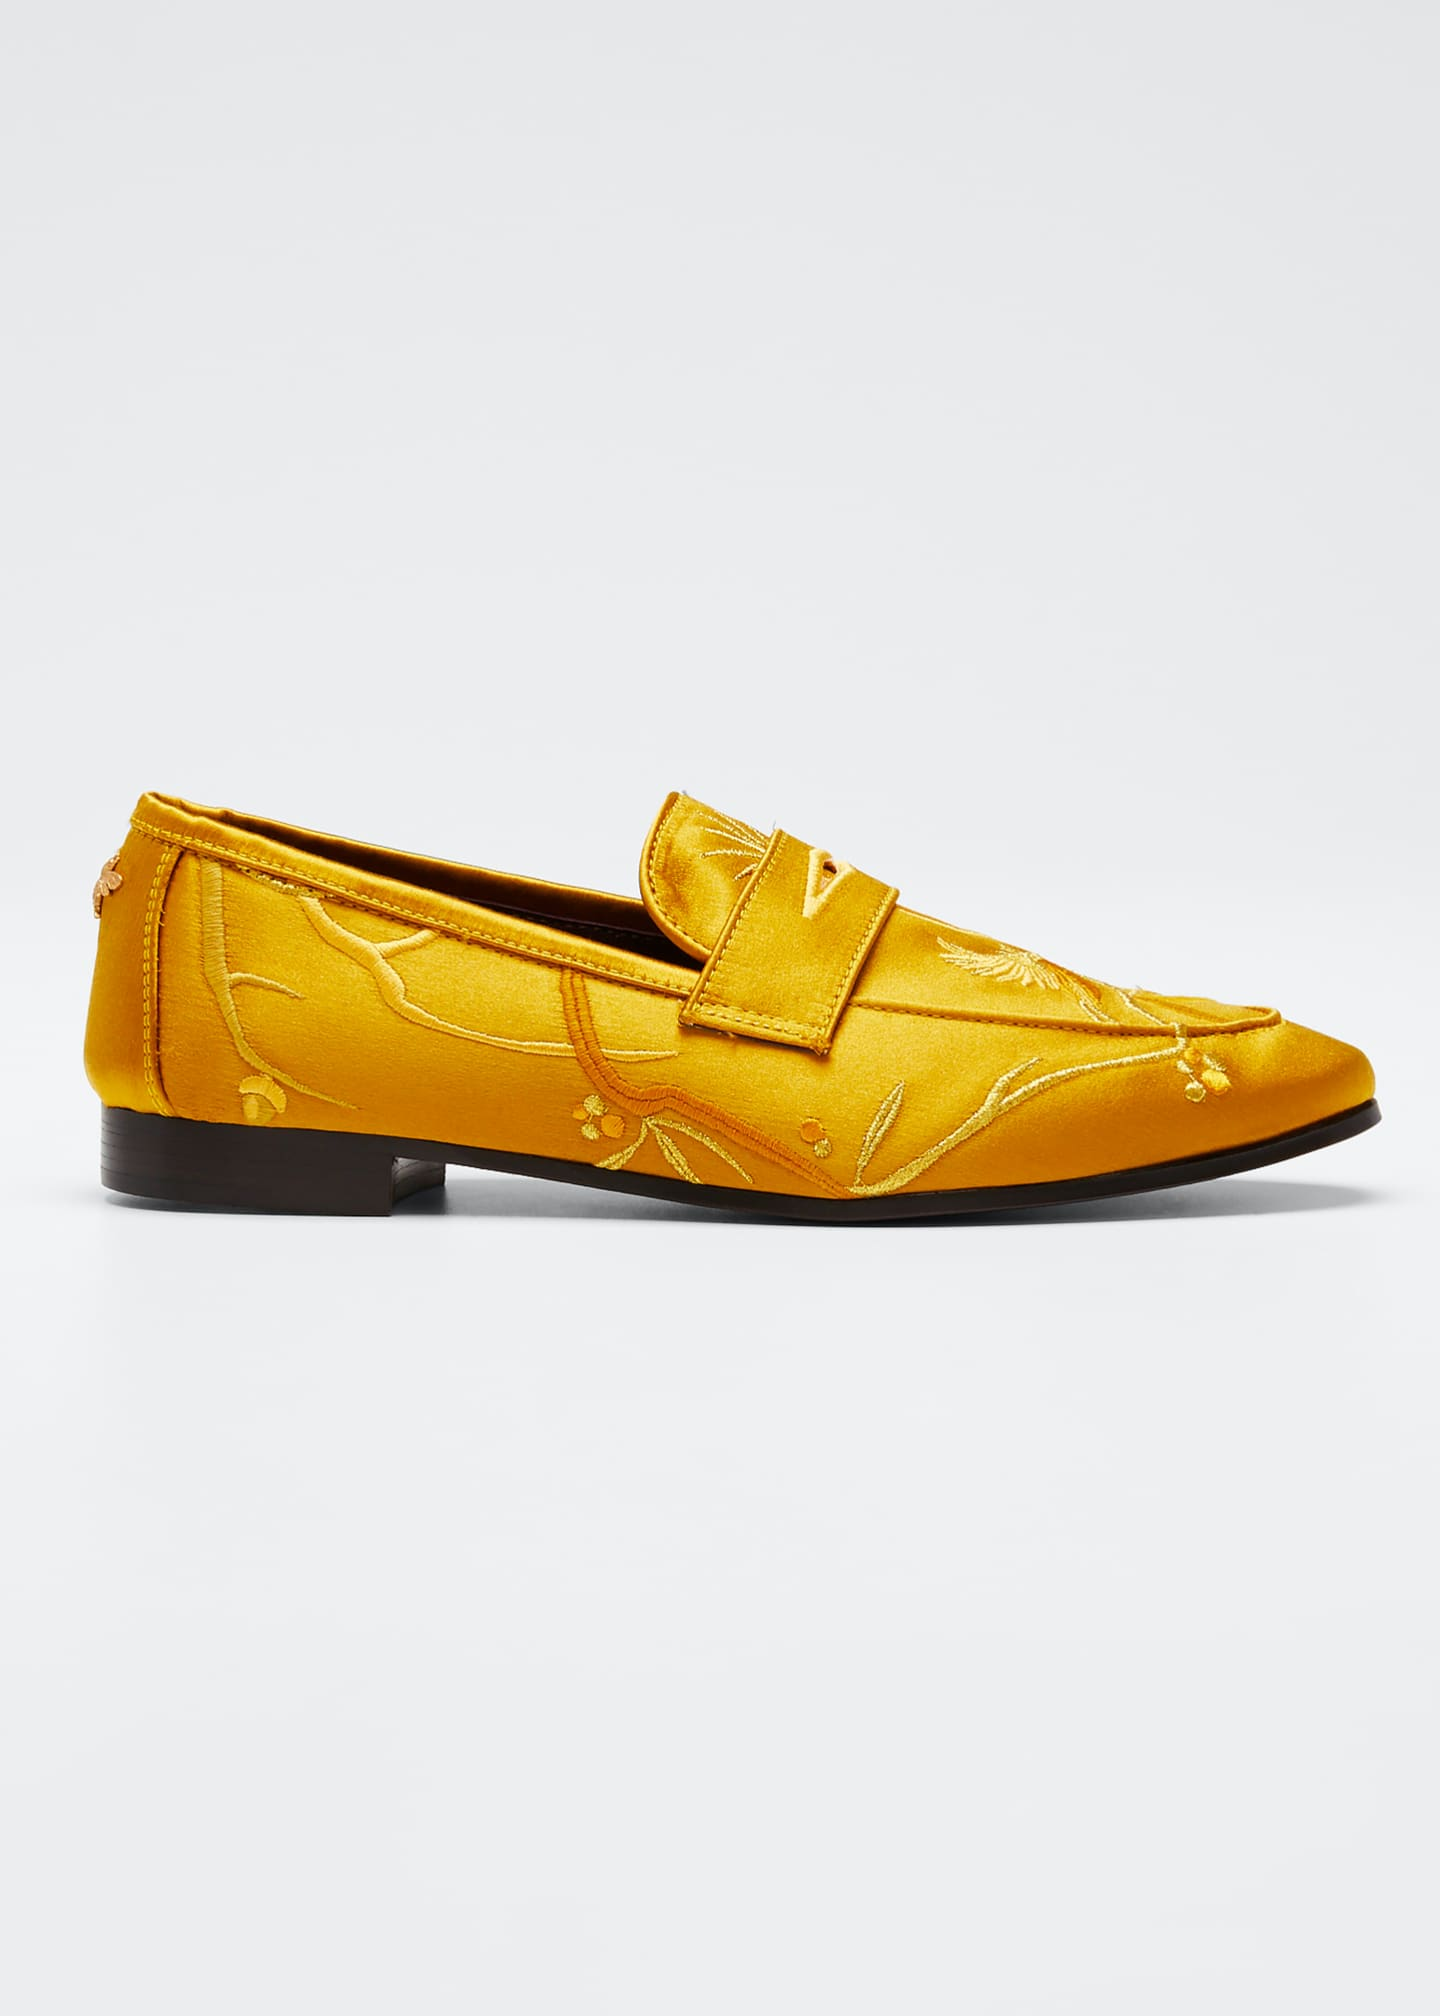 Bougeotte Embroidered Bullfinch Satin Loafers